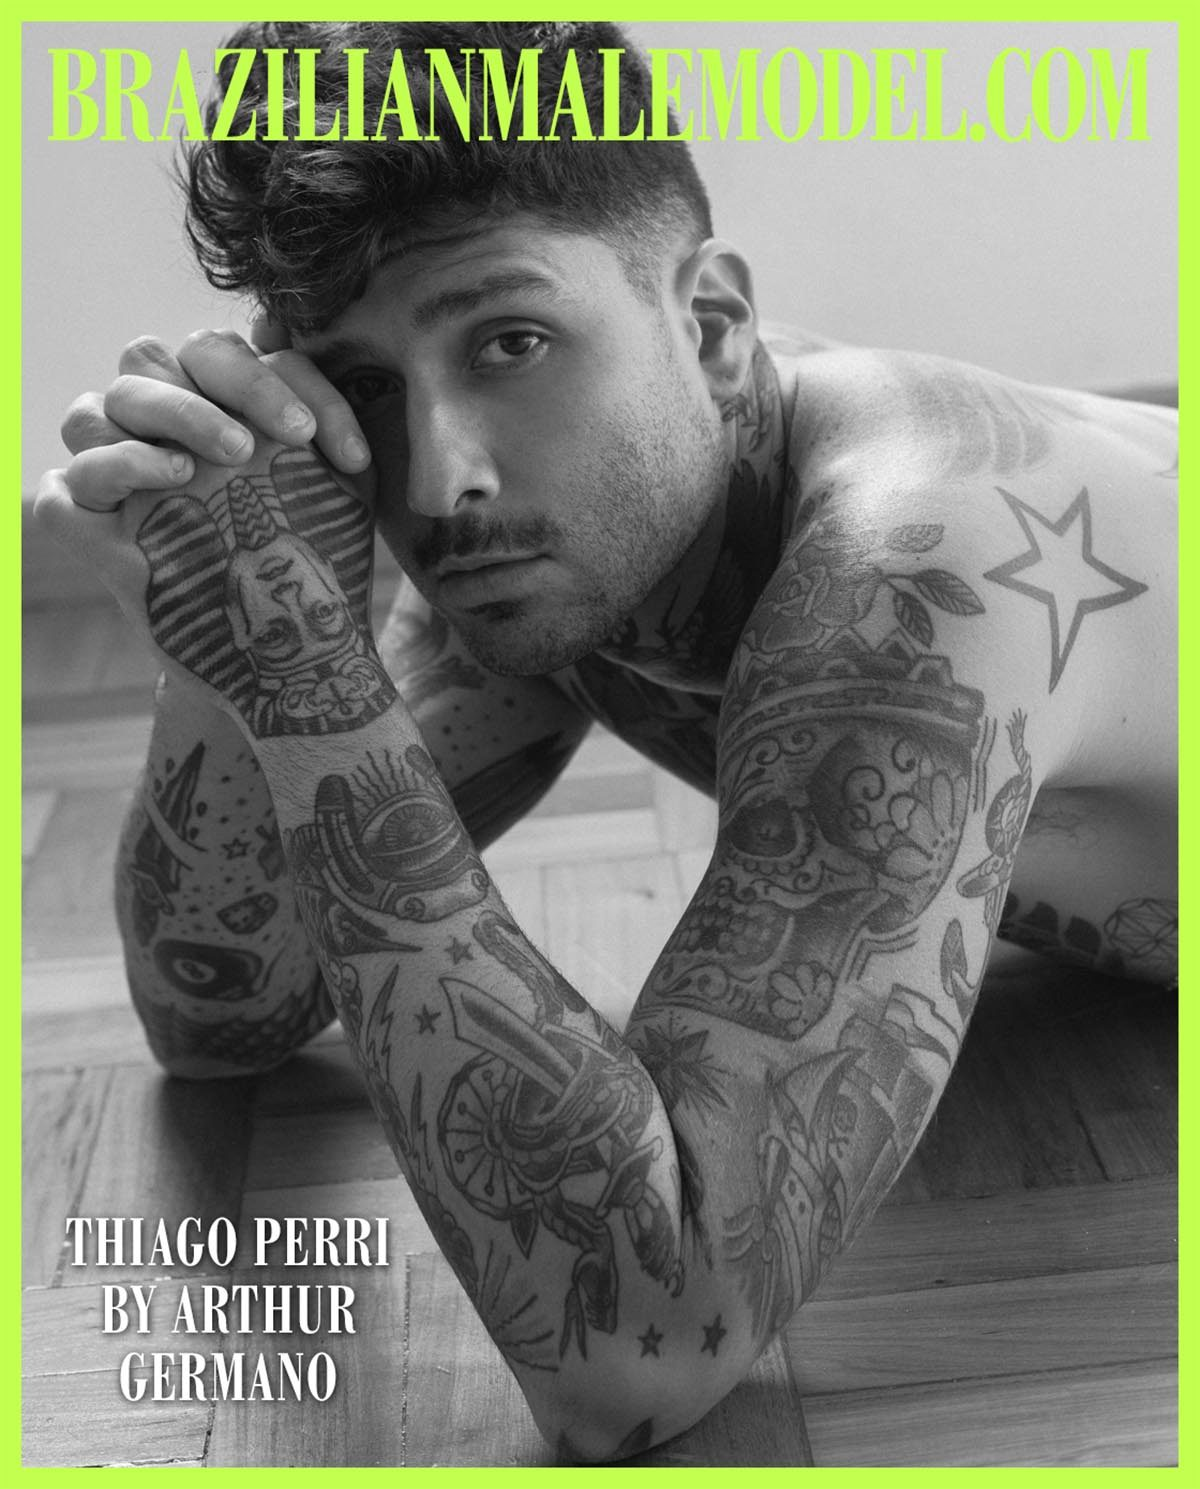 Thiago Perri by Arthur Germano